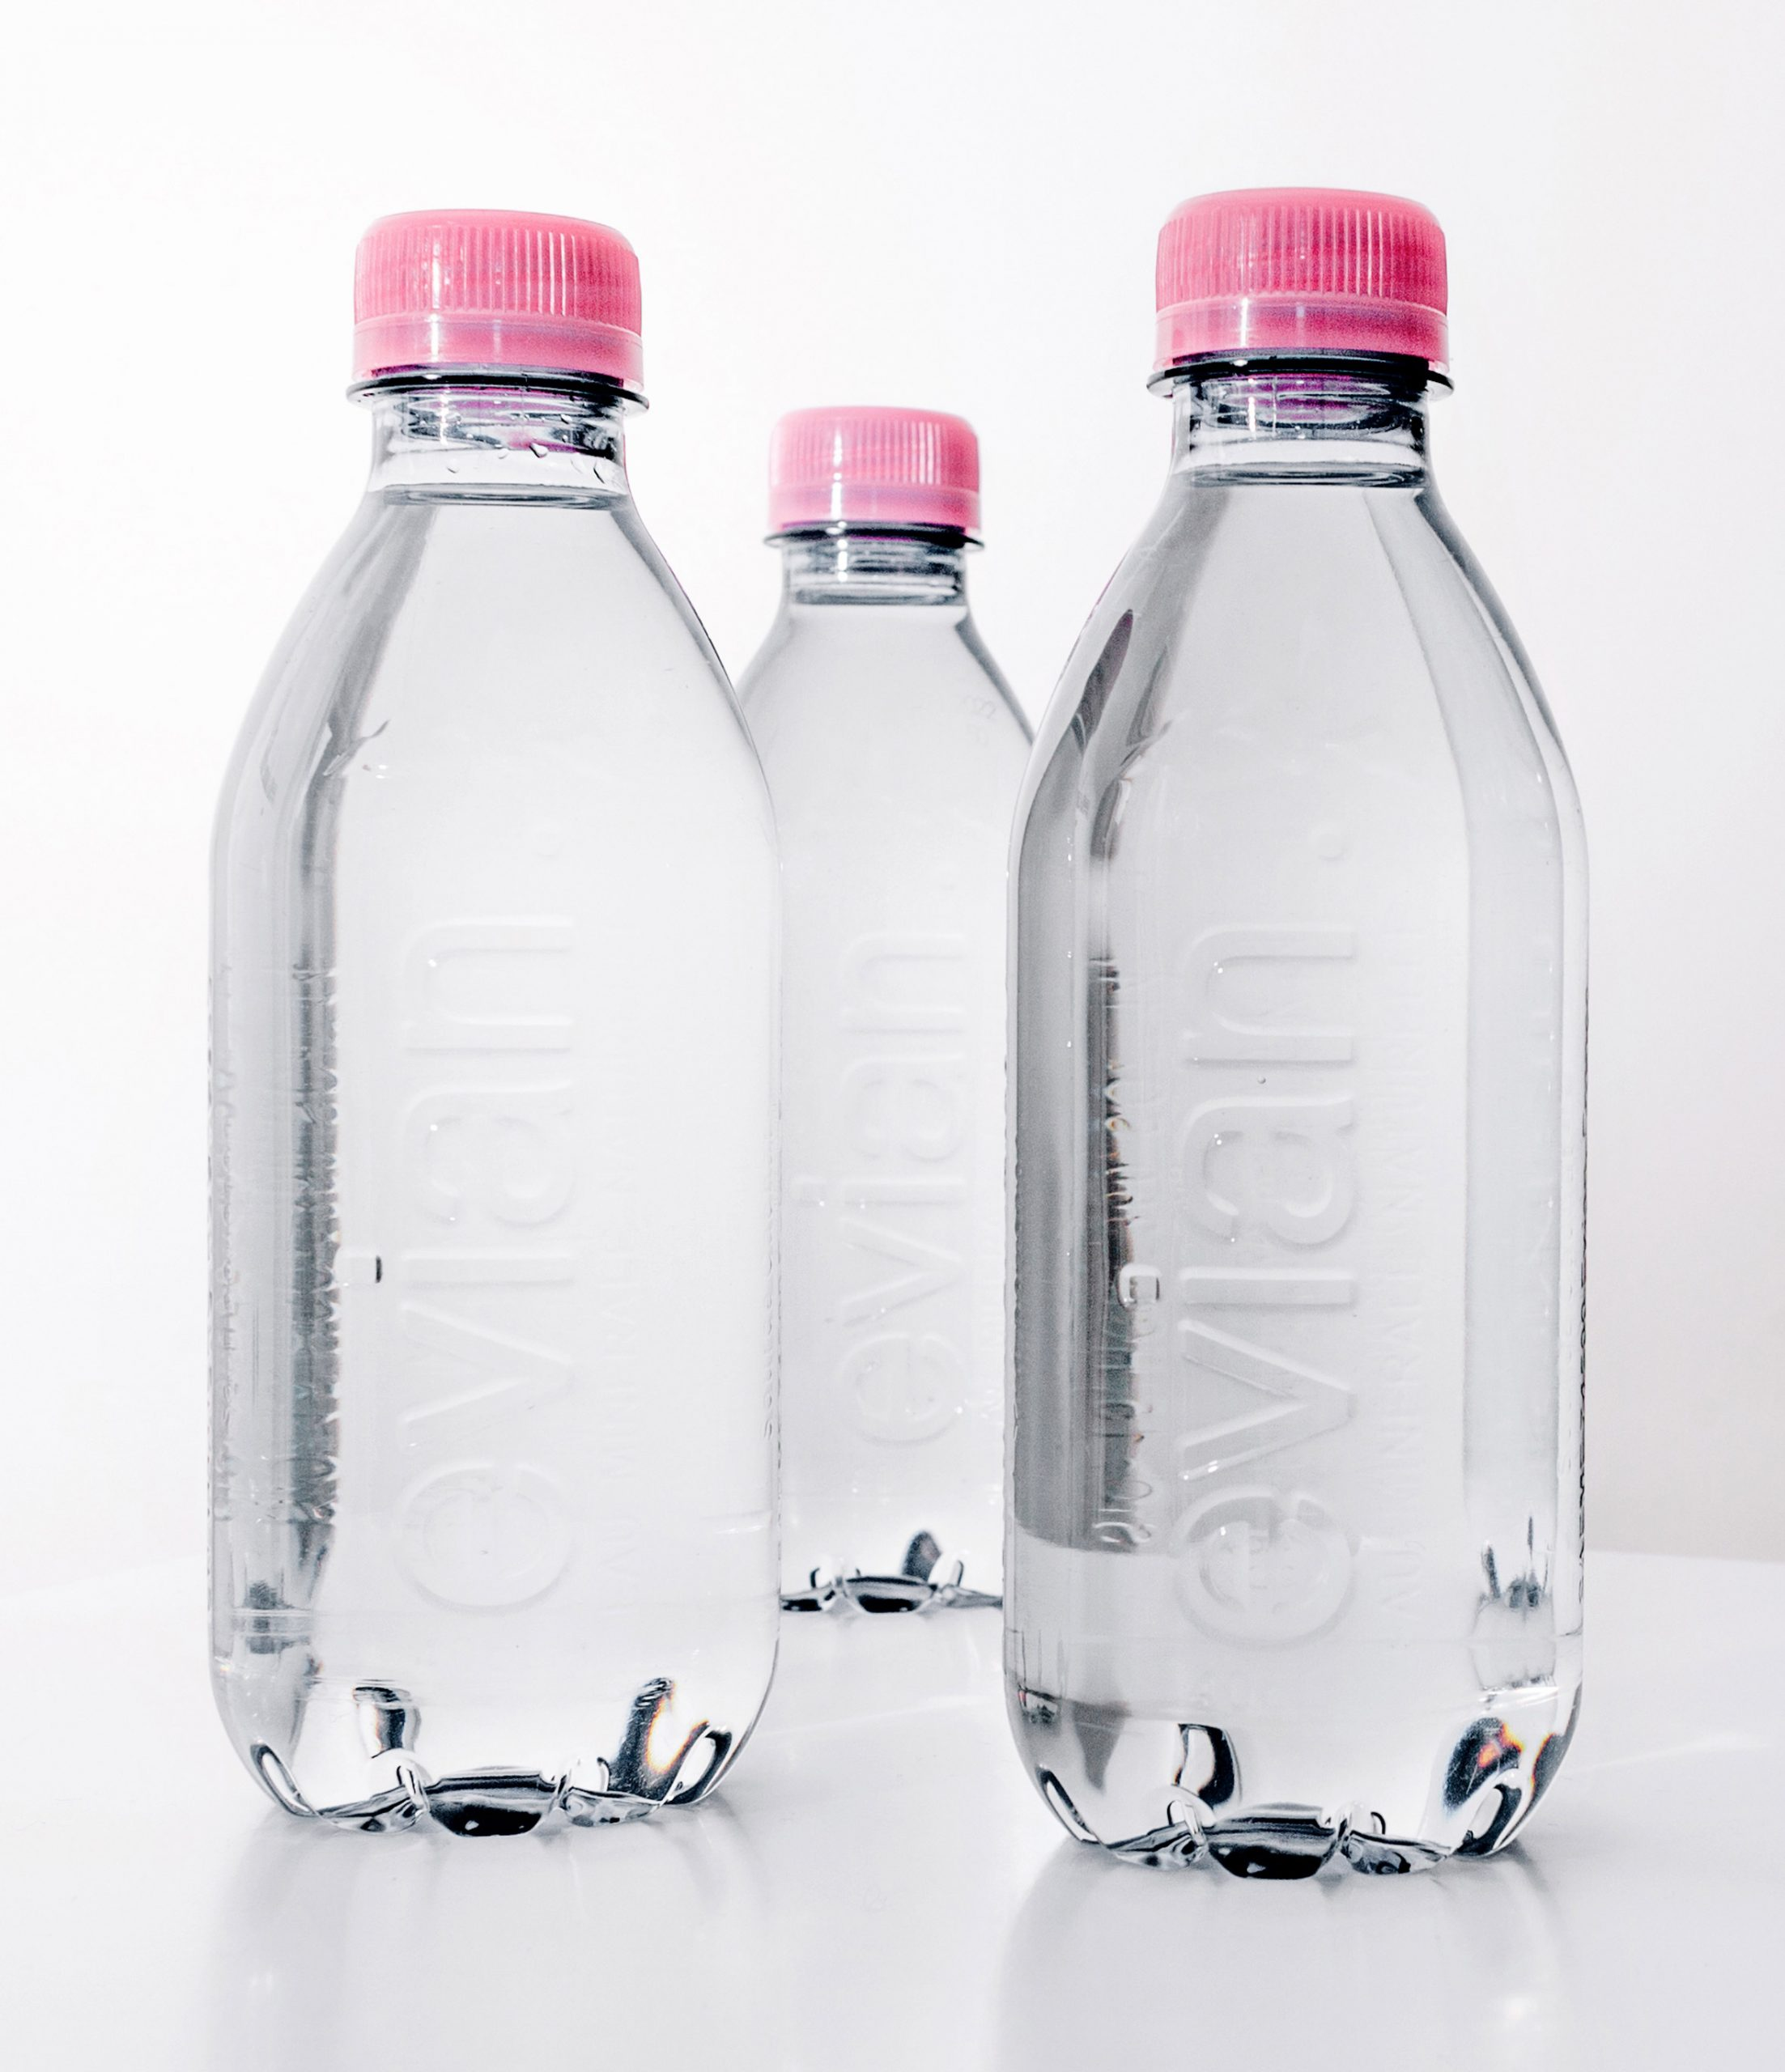 Evian releases label-free bottle made from recycled plastic